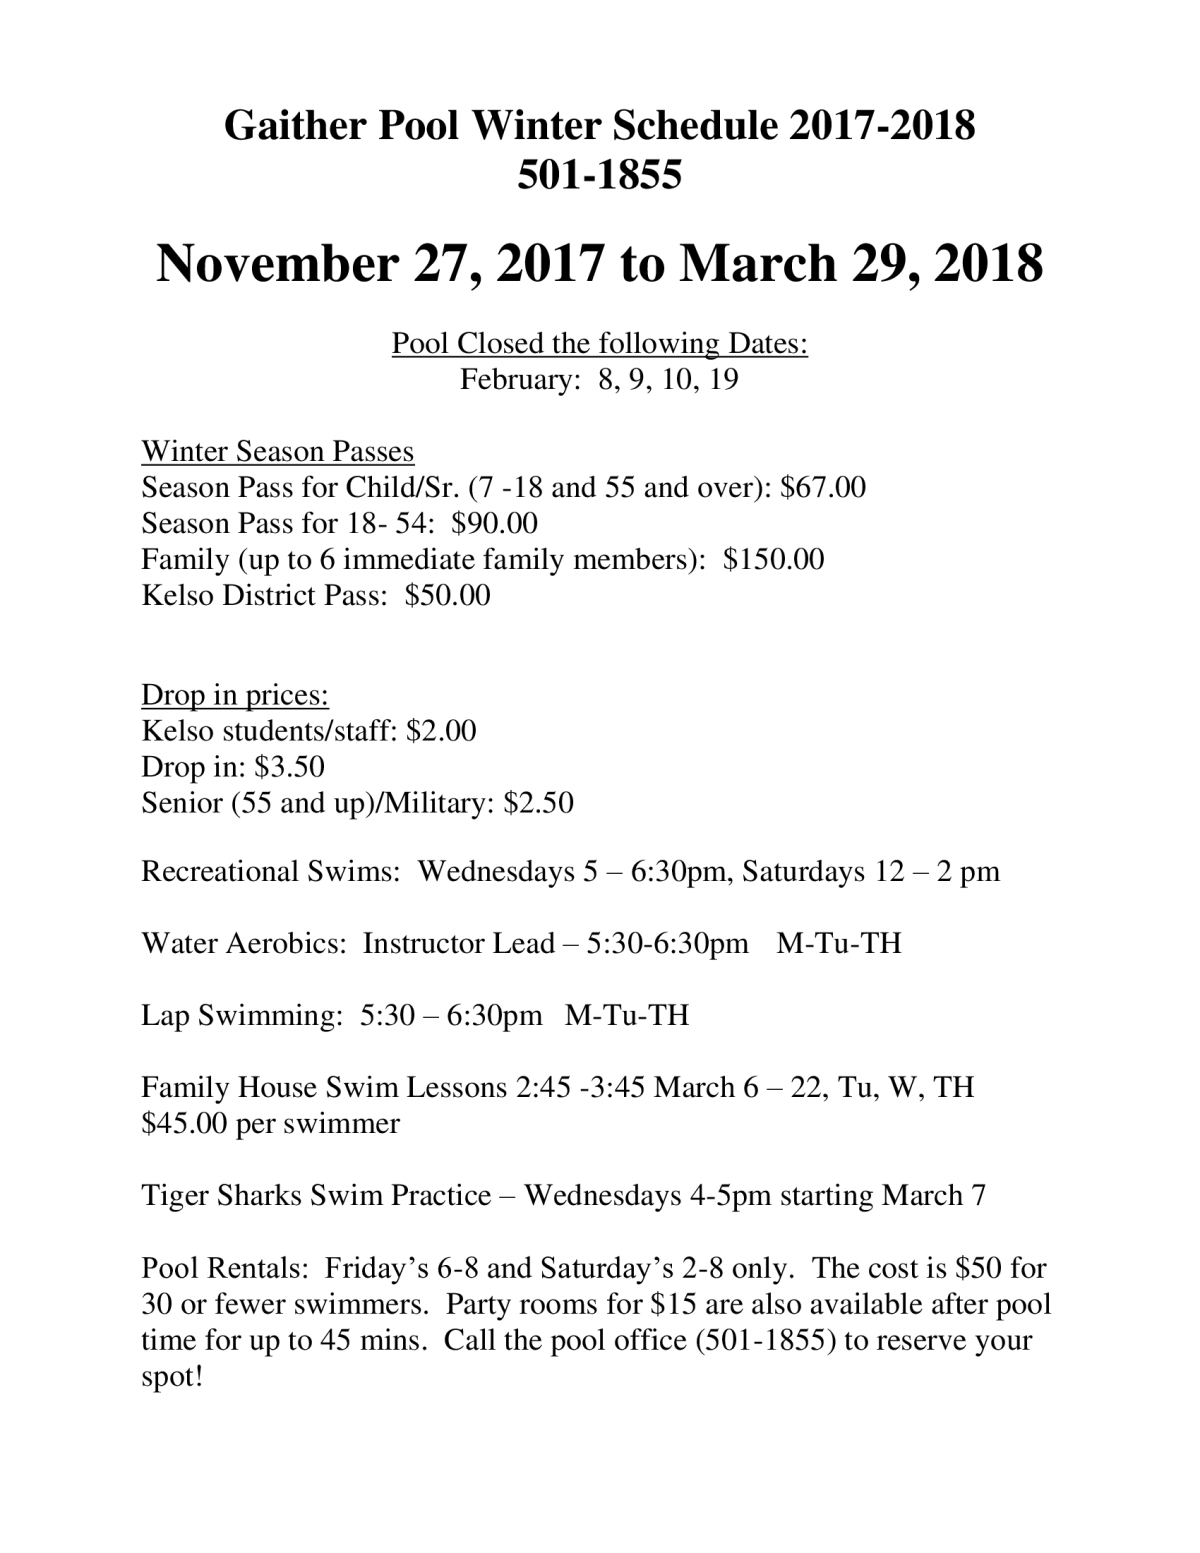 Description - Gaither Pool Schedule, November 27, 2017 - March 29, 2018 Text Found On Flyer - Gaither Pool Winter Schedule 2017-2018 501-1855 November 27, 2017 to March 29, 2018 oruary: Winter SeasonP Season Child/Sr. 7-18 and 55 and over): $67.00 Pass f -54: $90.00 Family 6immediate family members): $150.00 ODistrict Pass: $50.00 Drop in prices: Kelso students/staff: $2.00 Senior (55 5and up)/Military: $2.50 Recreational Swims: Wednesdays 6:30pm, urdays 1: 12 2 pm Water Aerobics: Instructor -5:30-6:30pm M-Tu-TH Swimming: -6:30pm M-Tu-TH Family yHouse SwimLessons -3:45 March 6 Tu,W,TH $45.00 per swimmer Tiger Sharks Swim Practice Wednesdays -5pm starting March Rentals: lay's 6-8 Saturday's 2-8only. for wersw swimmers. ms for$l also time mins. l the pool 1855) t0 reserve your spot! Need more information on this flyer? You can email the person who submitted the flyer at beth.grambo@kelsosd.org to learn more.